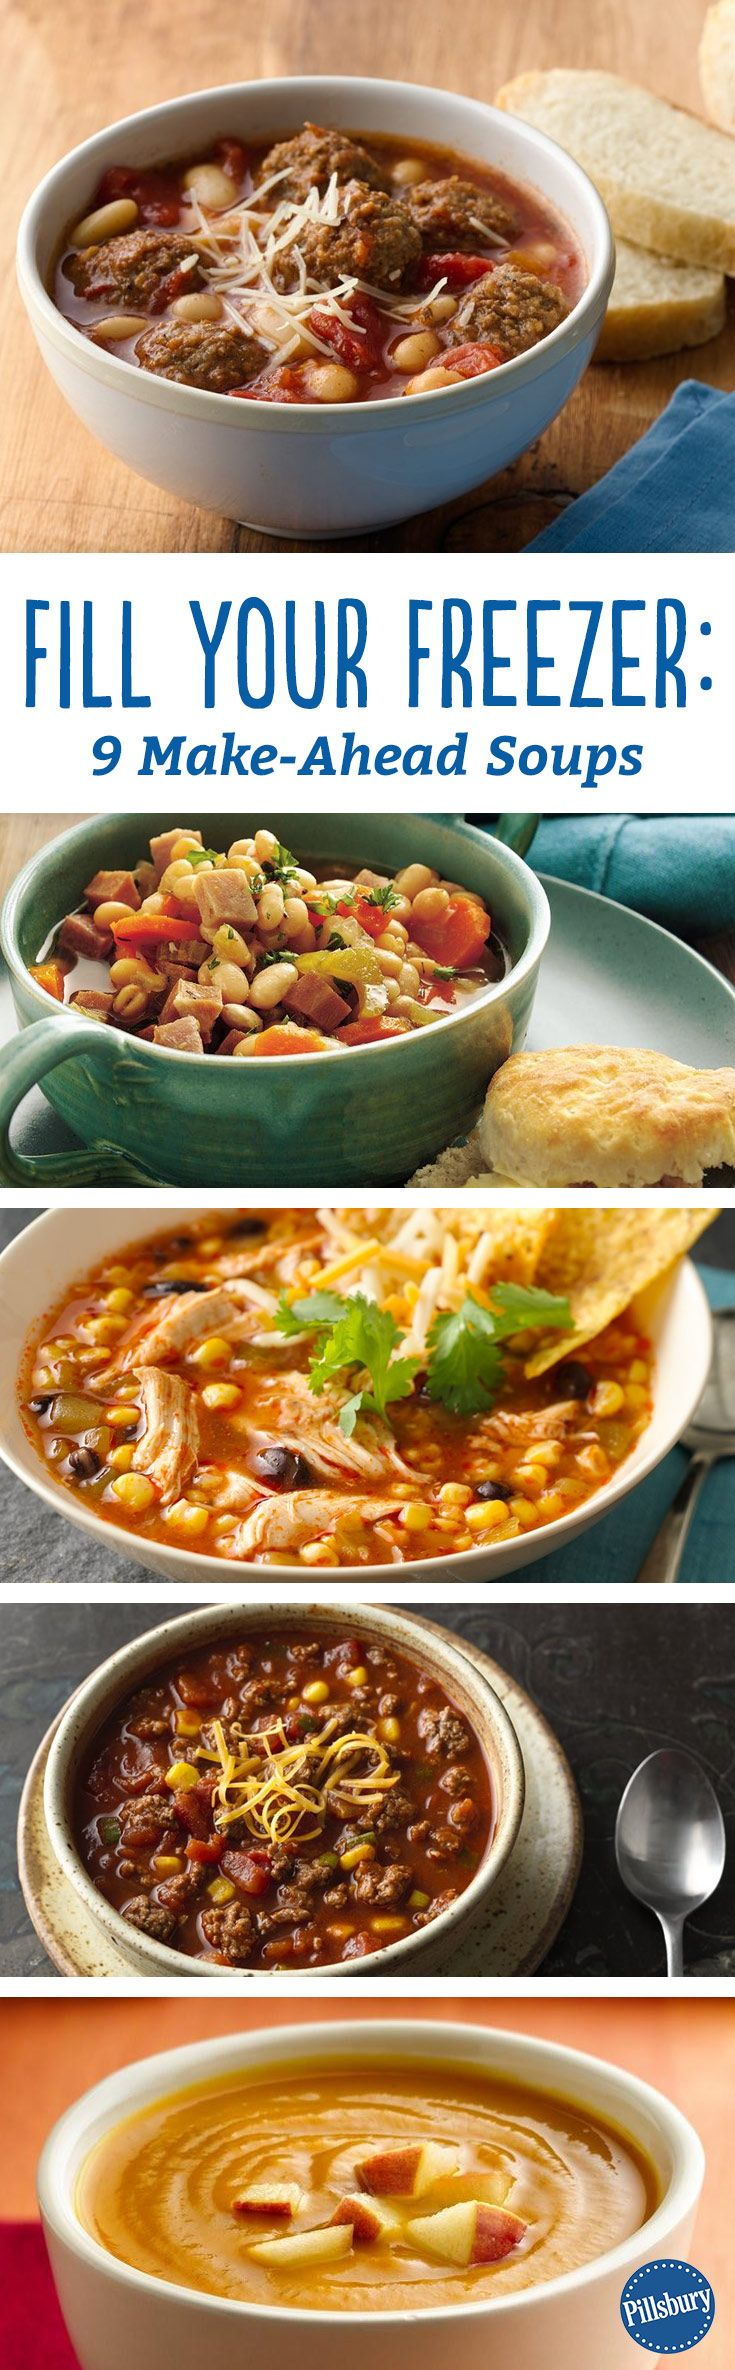 how to make taco soup without meat